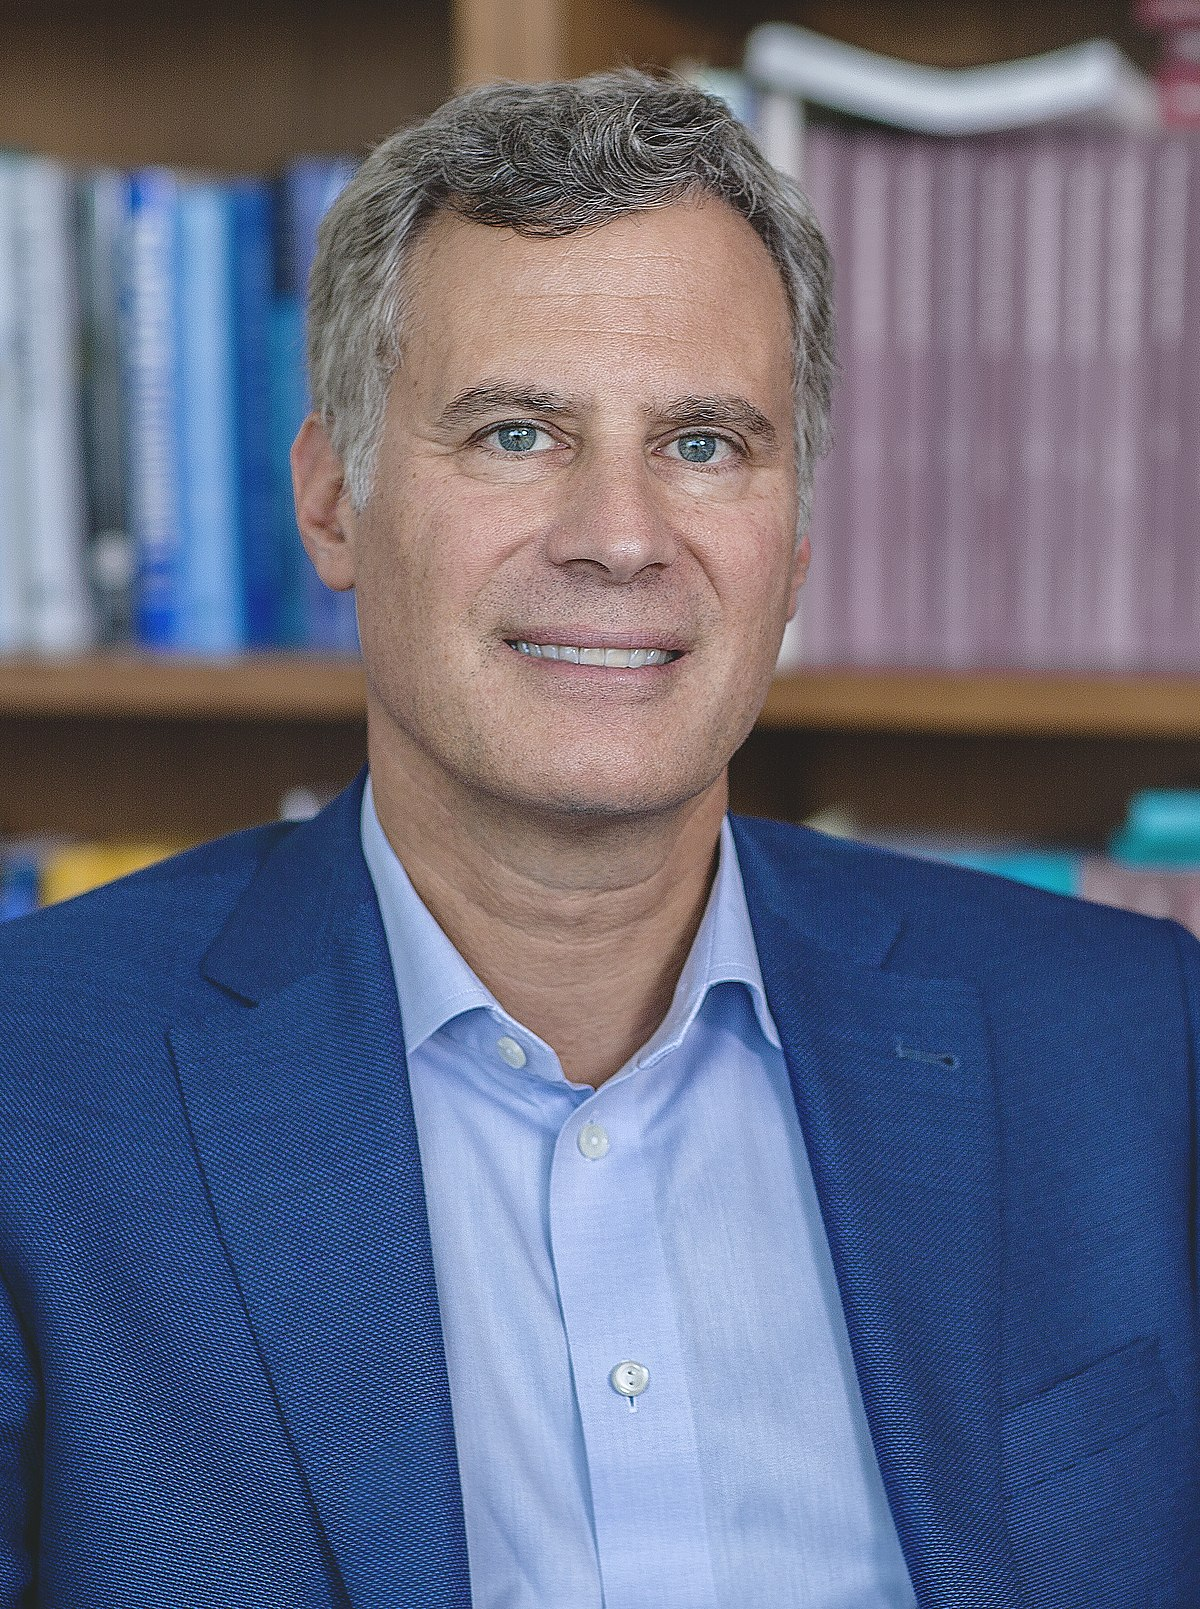 Alan Krueger Wikipedia